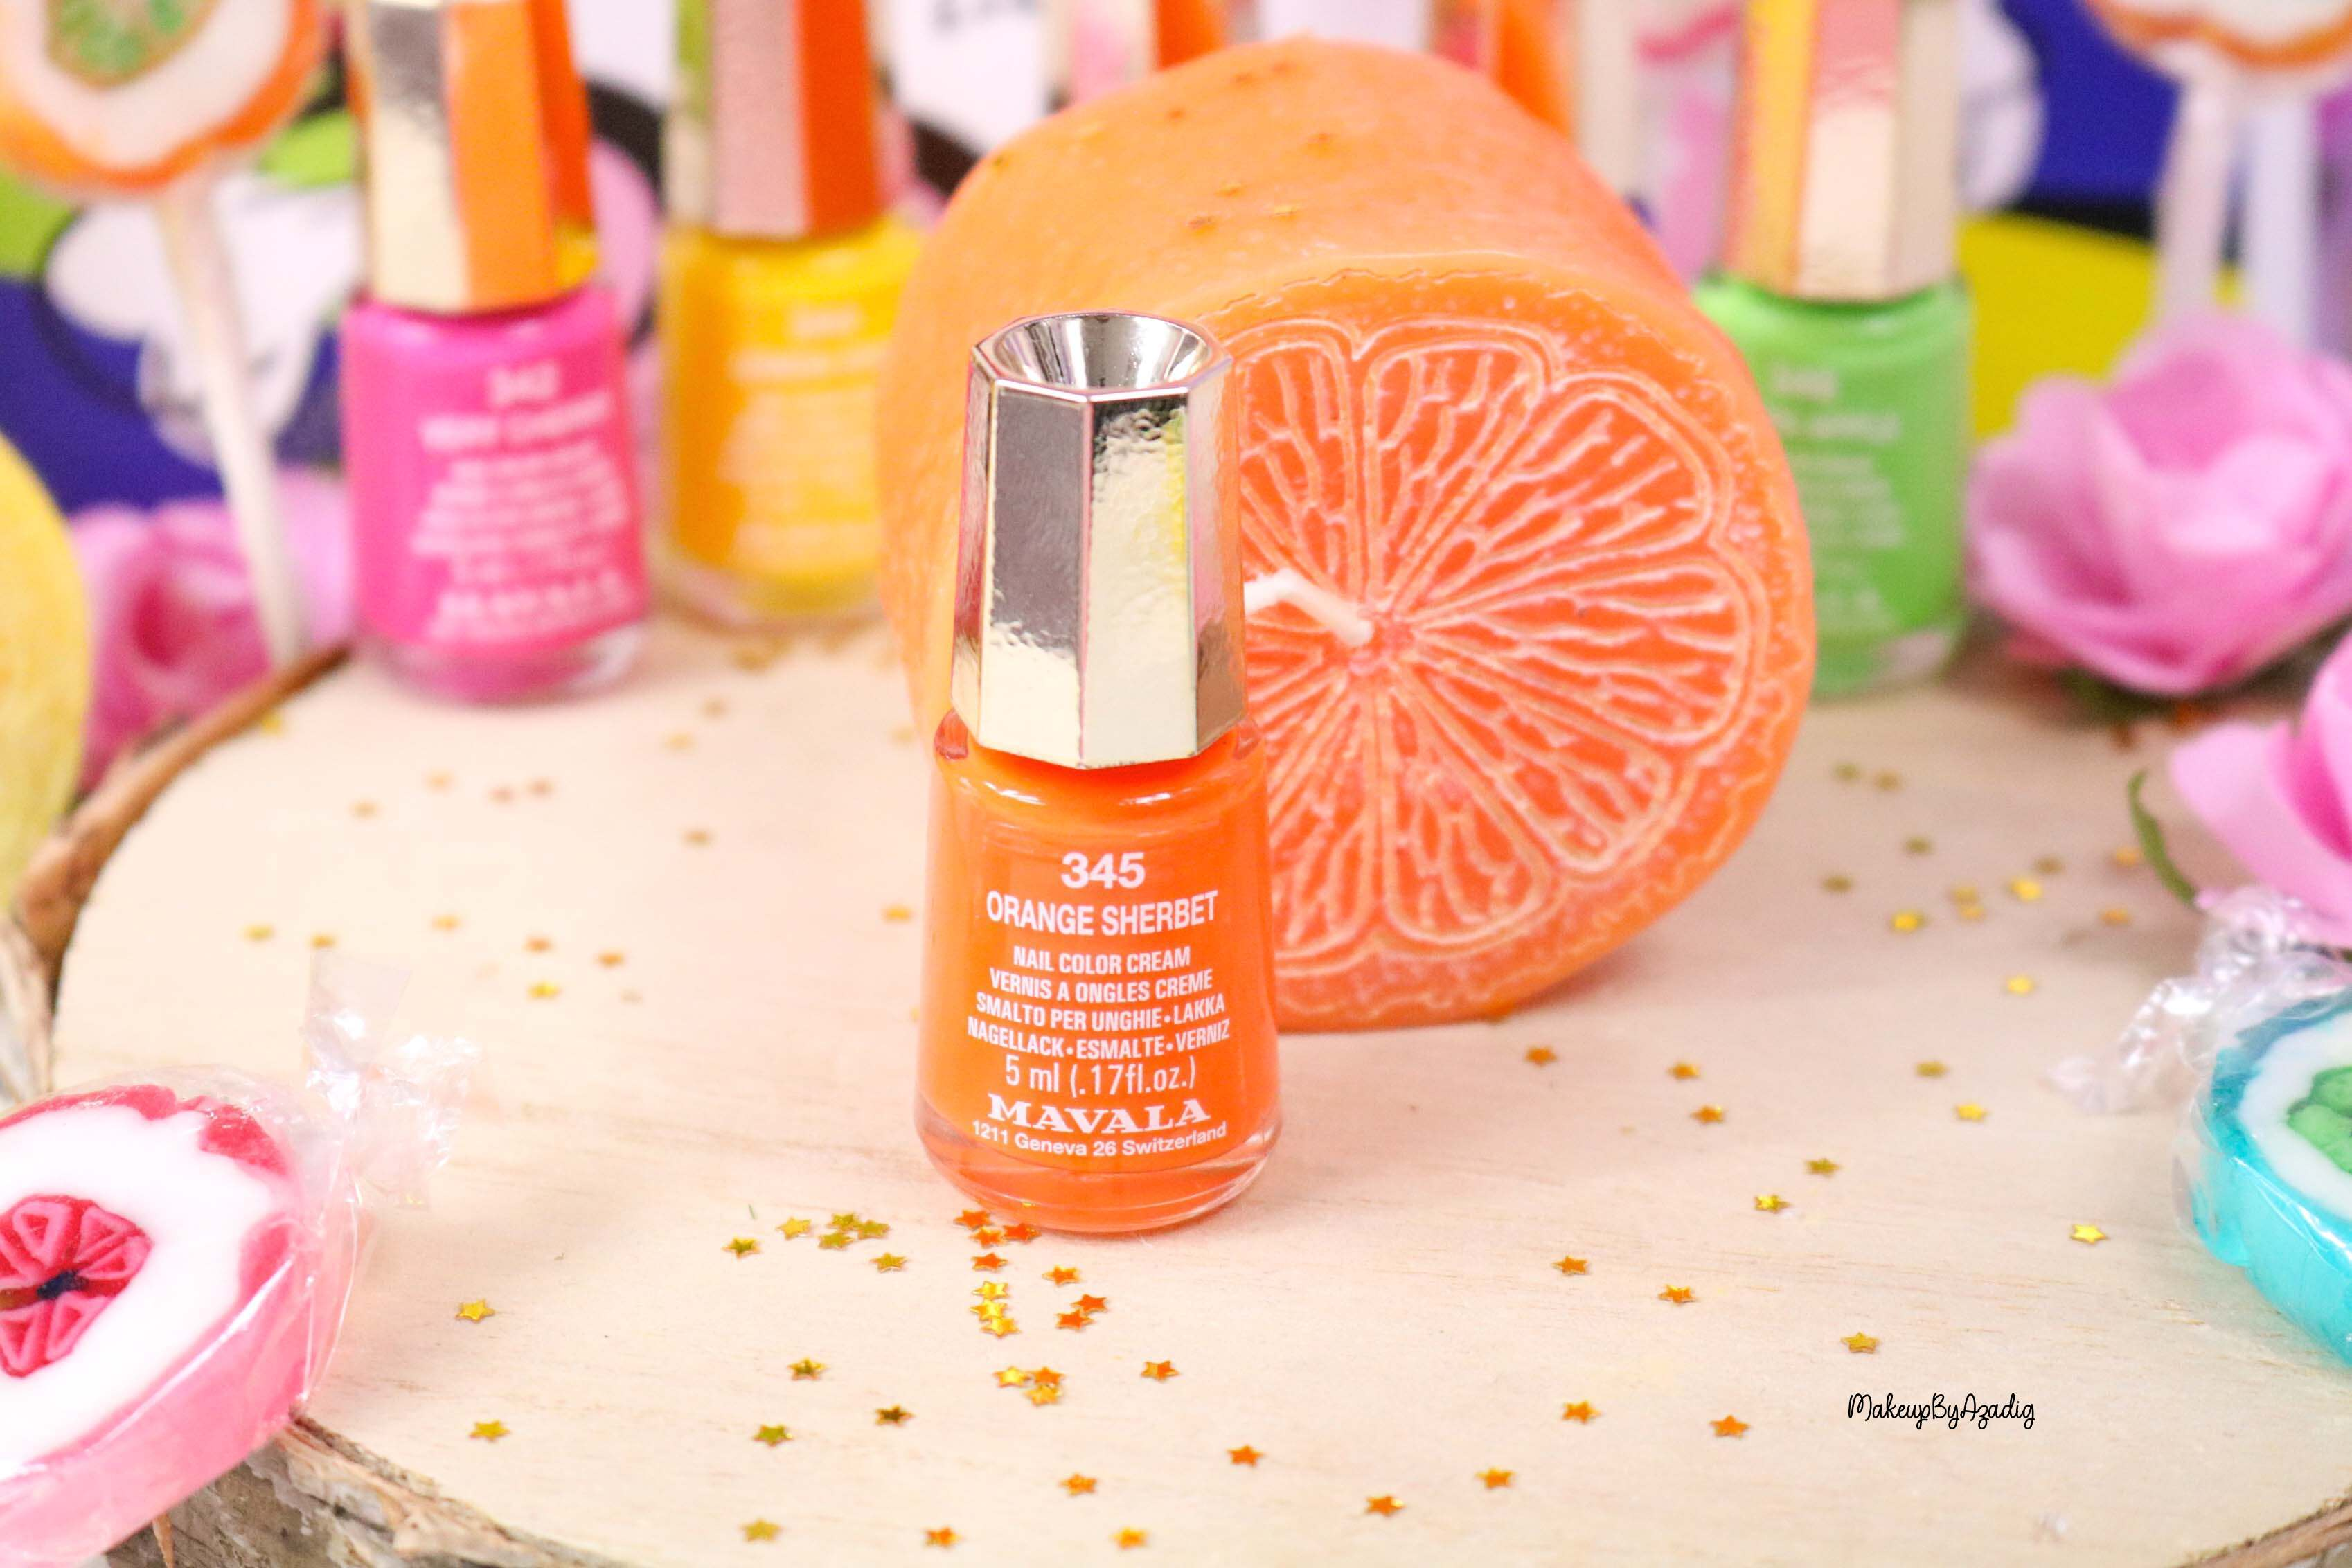 nouvelle-collection-vernis-tendance-printemps-ete-mavala-pas-cher-makeupbyazadig-avis-prix-monoprix-bubble-gum-orange-sorbet